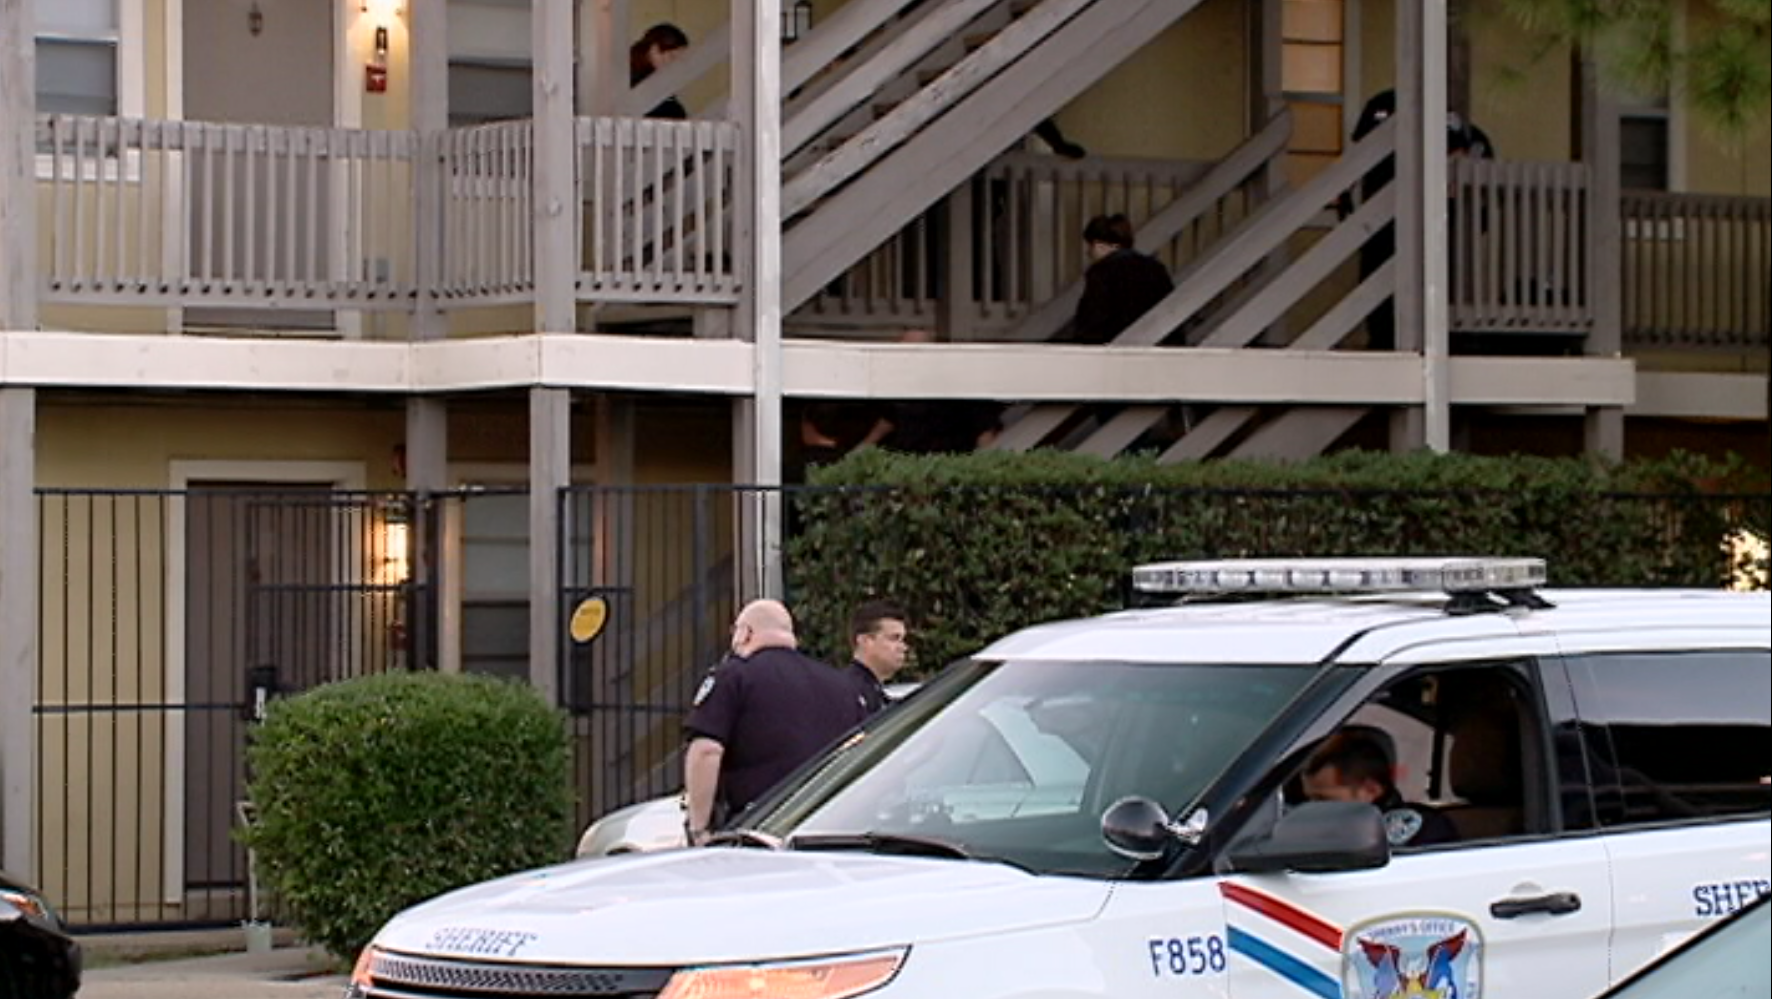 Homicide at Metairie apartment complex